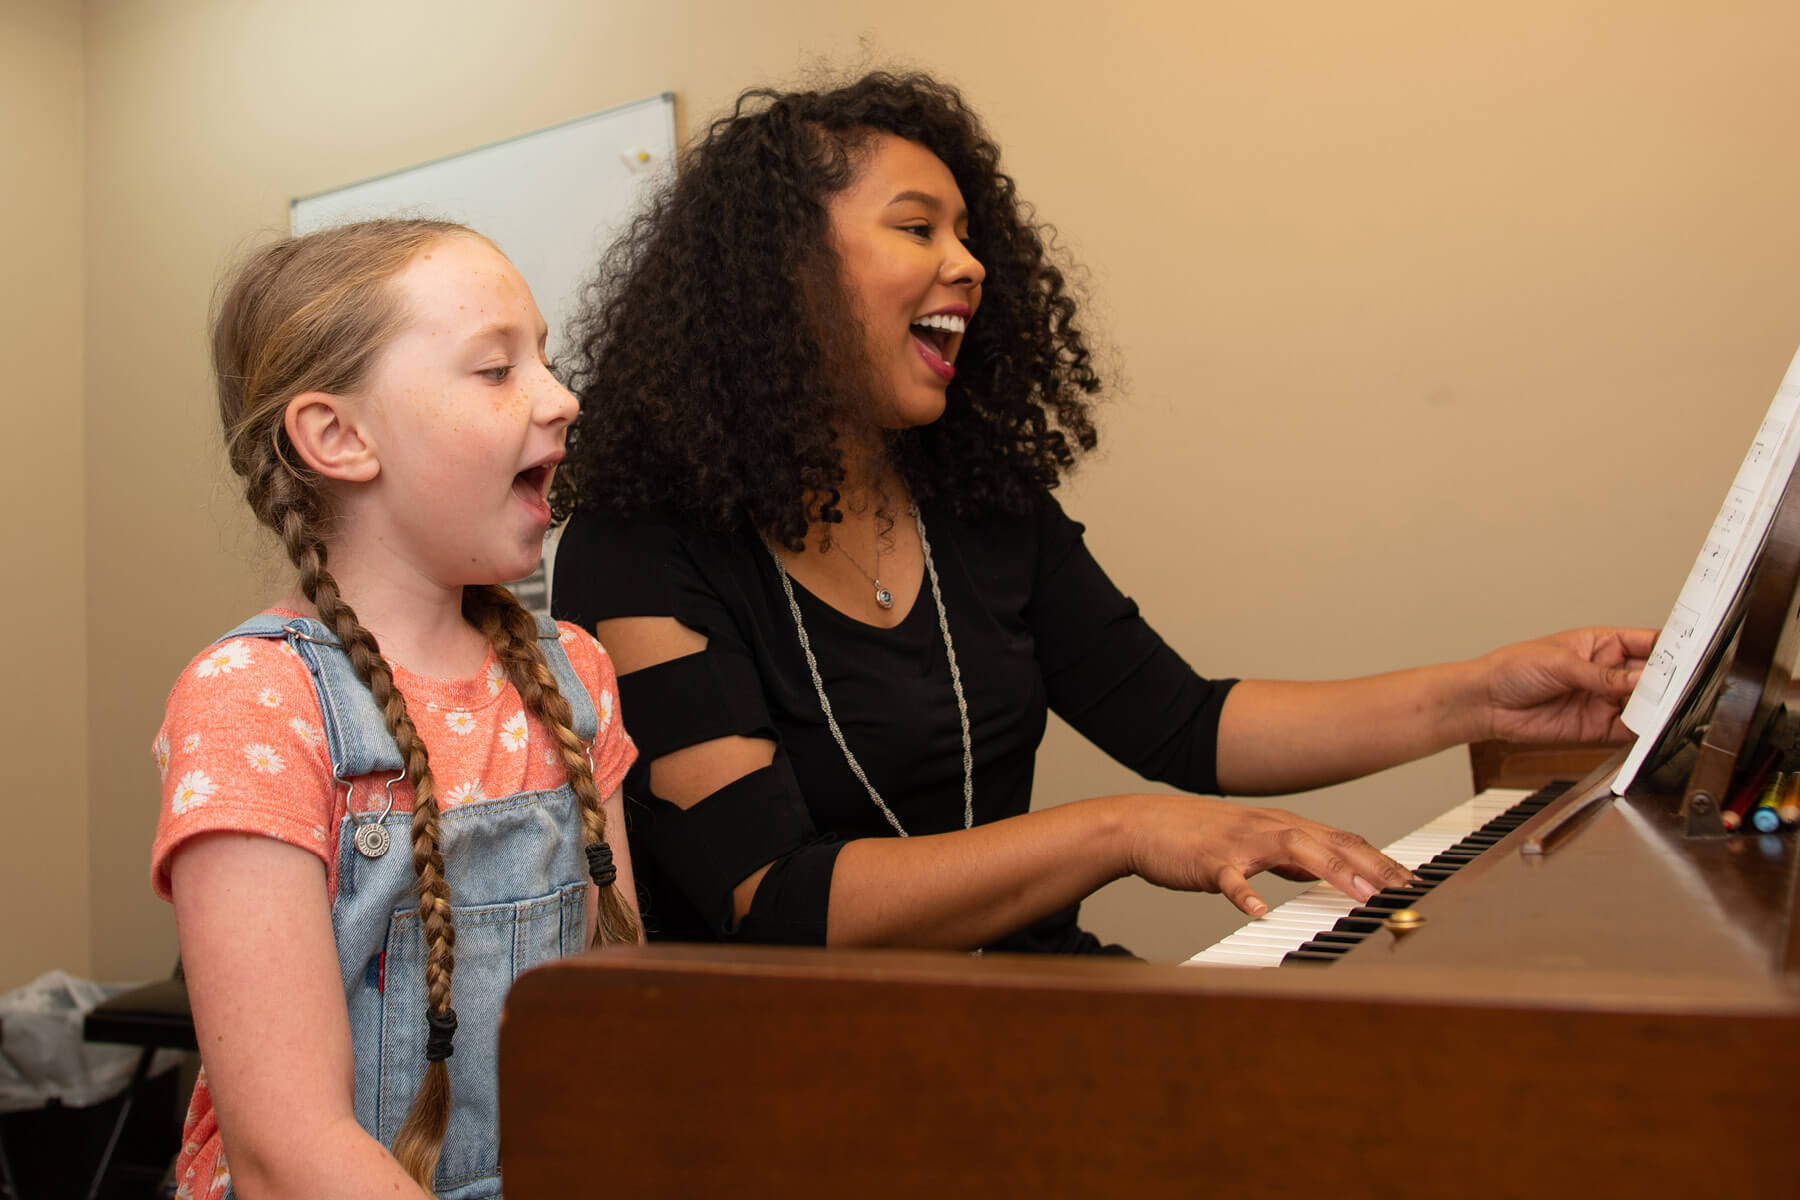 Student takes voice lessons at Lexington School of Music